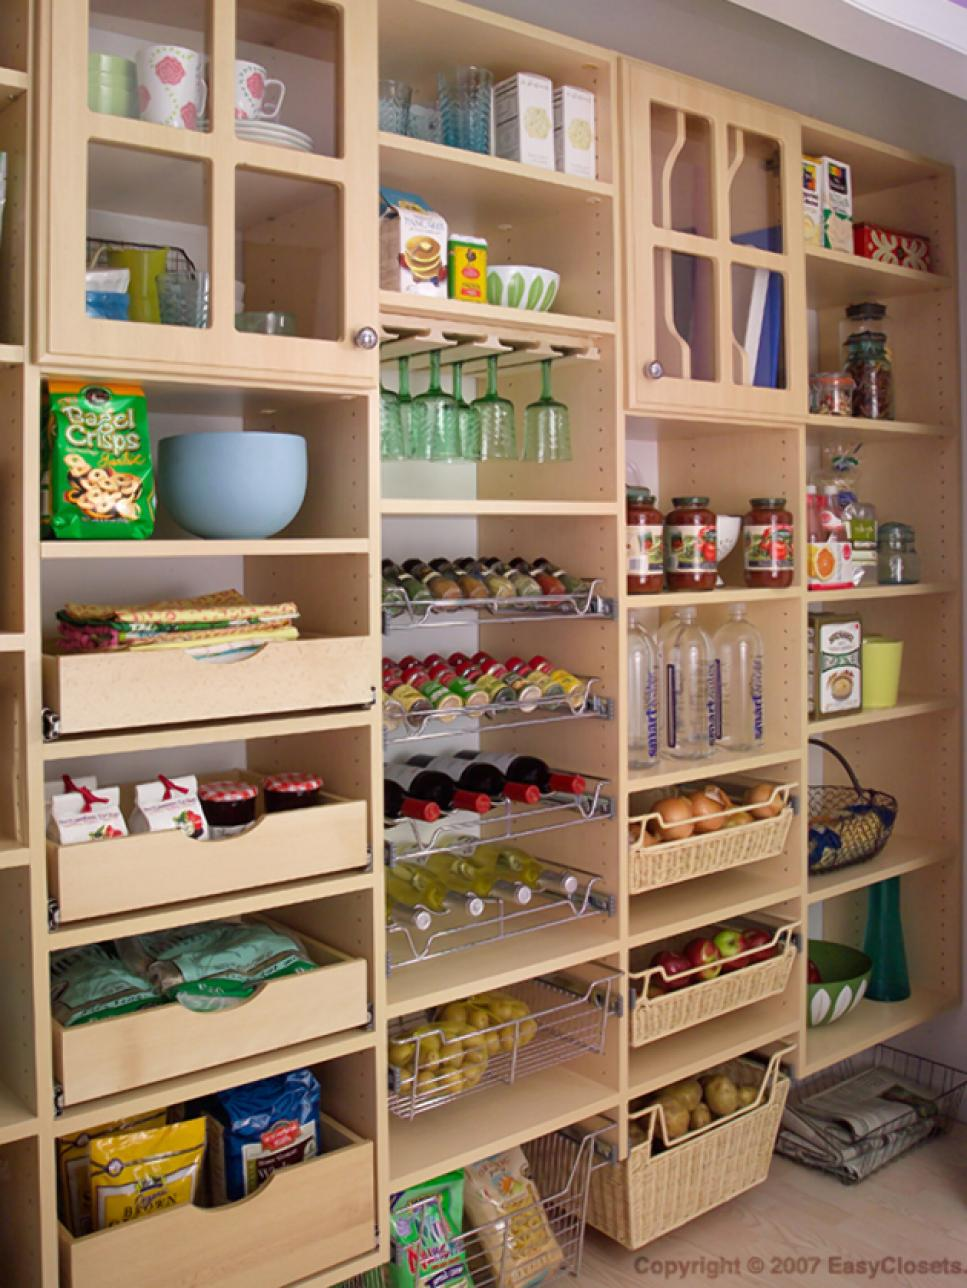 Kitchen Storage Diy Organization And Design Ideas For Storage In The Kitchen Pantry  Diy